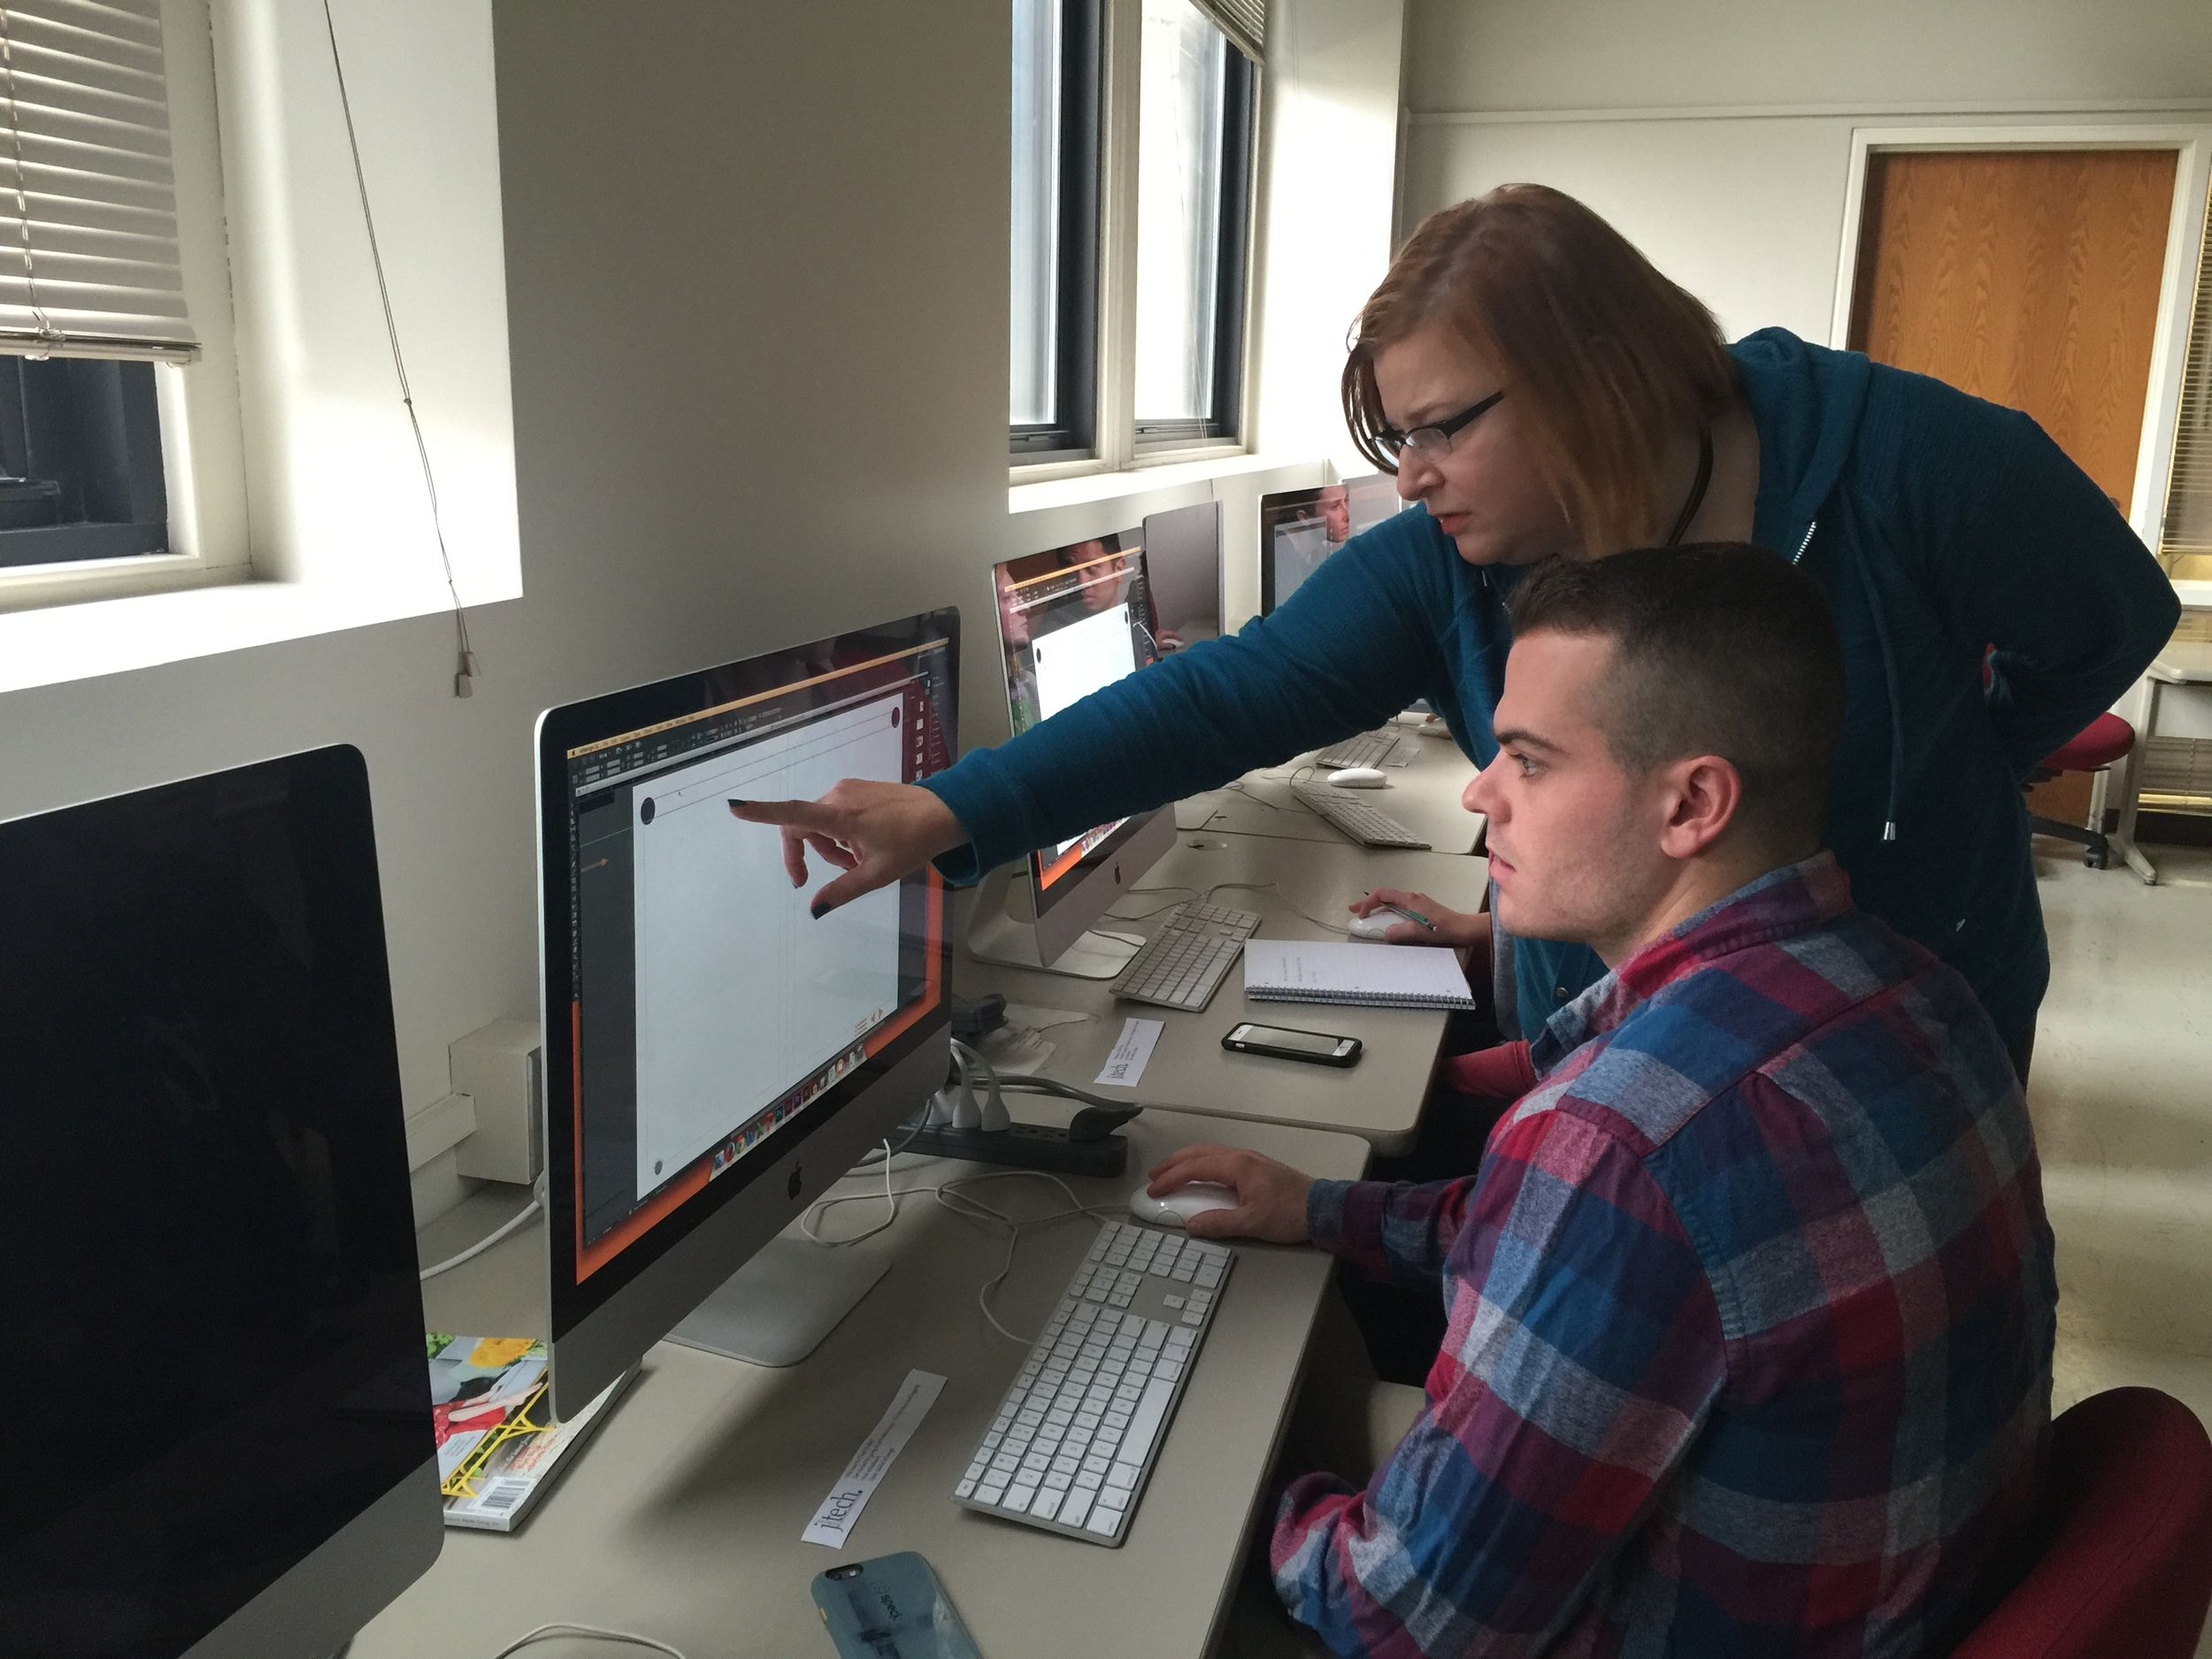 This semester, students learned InDesign, Photoshop, Adobe Premiere and WordPress during JTech Fridays from Heather Lawrenz, the J-School's digital media specialist.